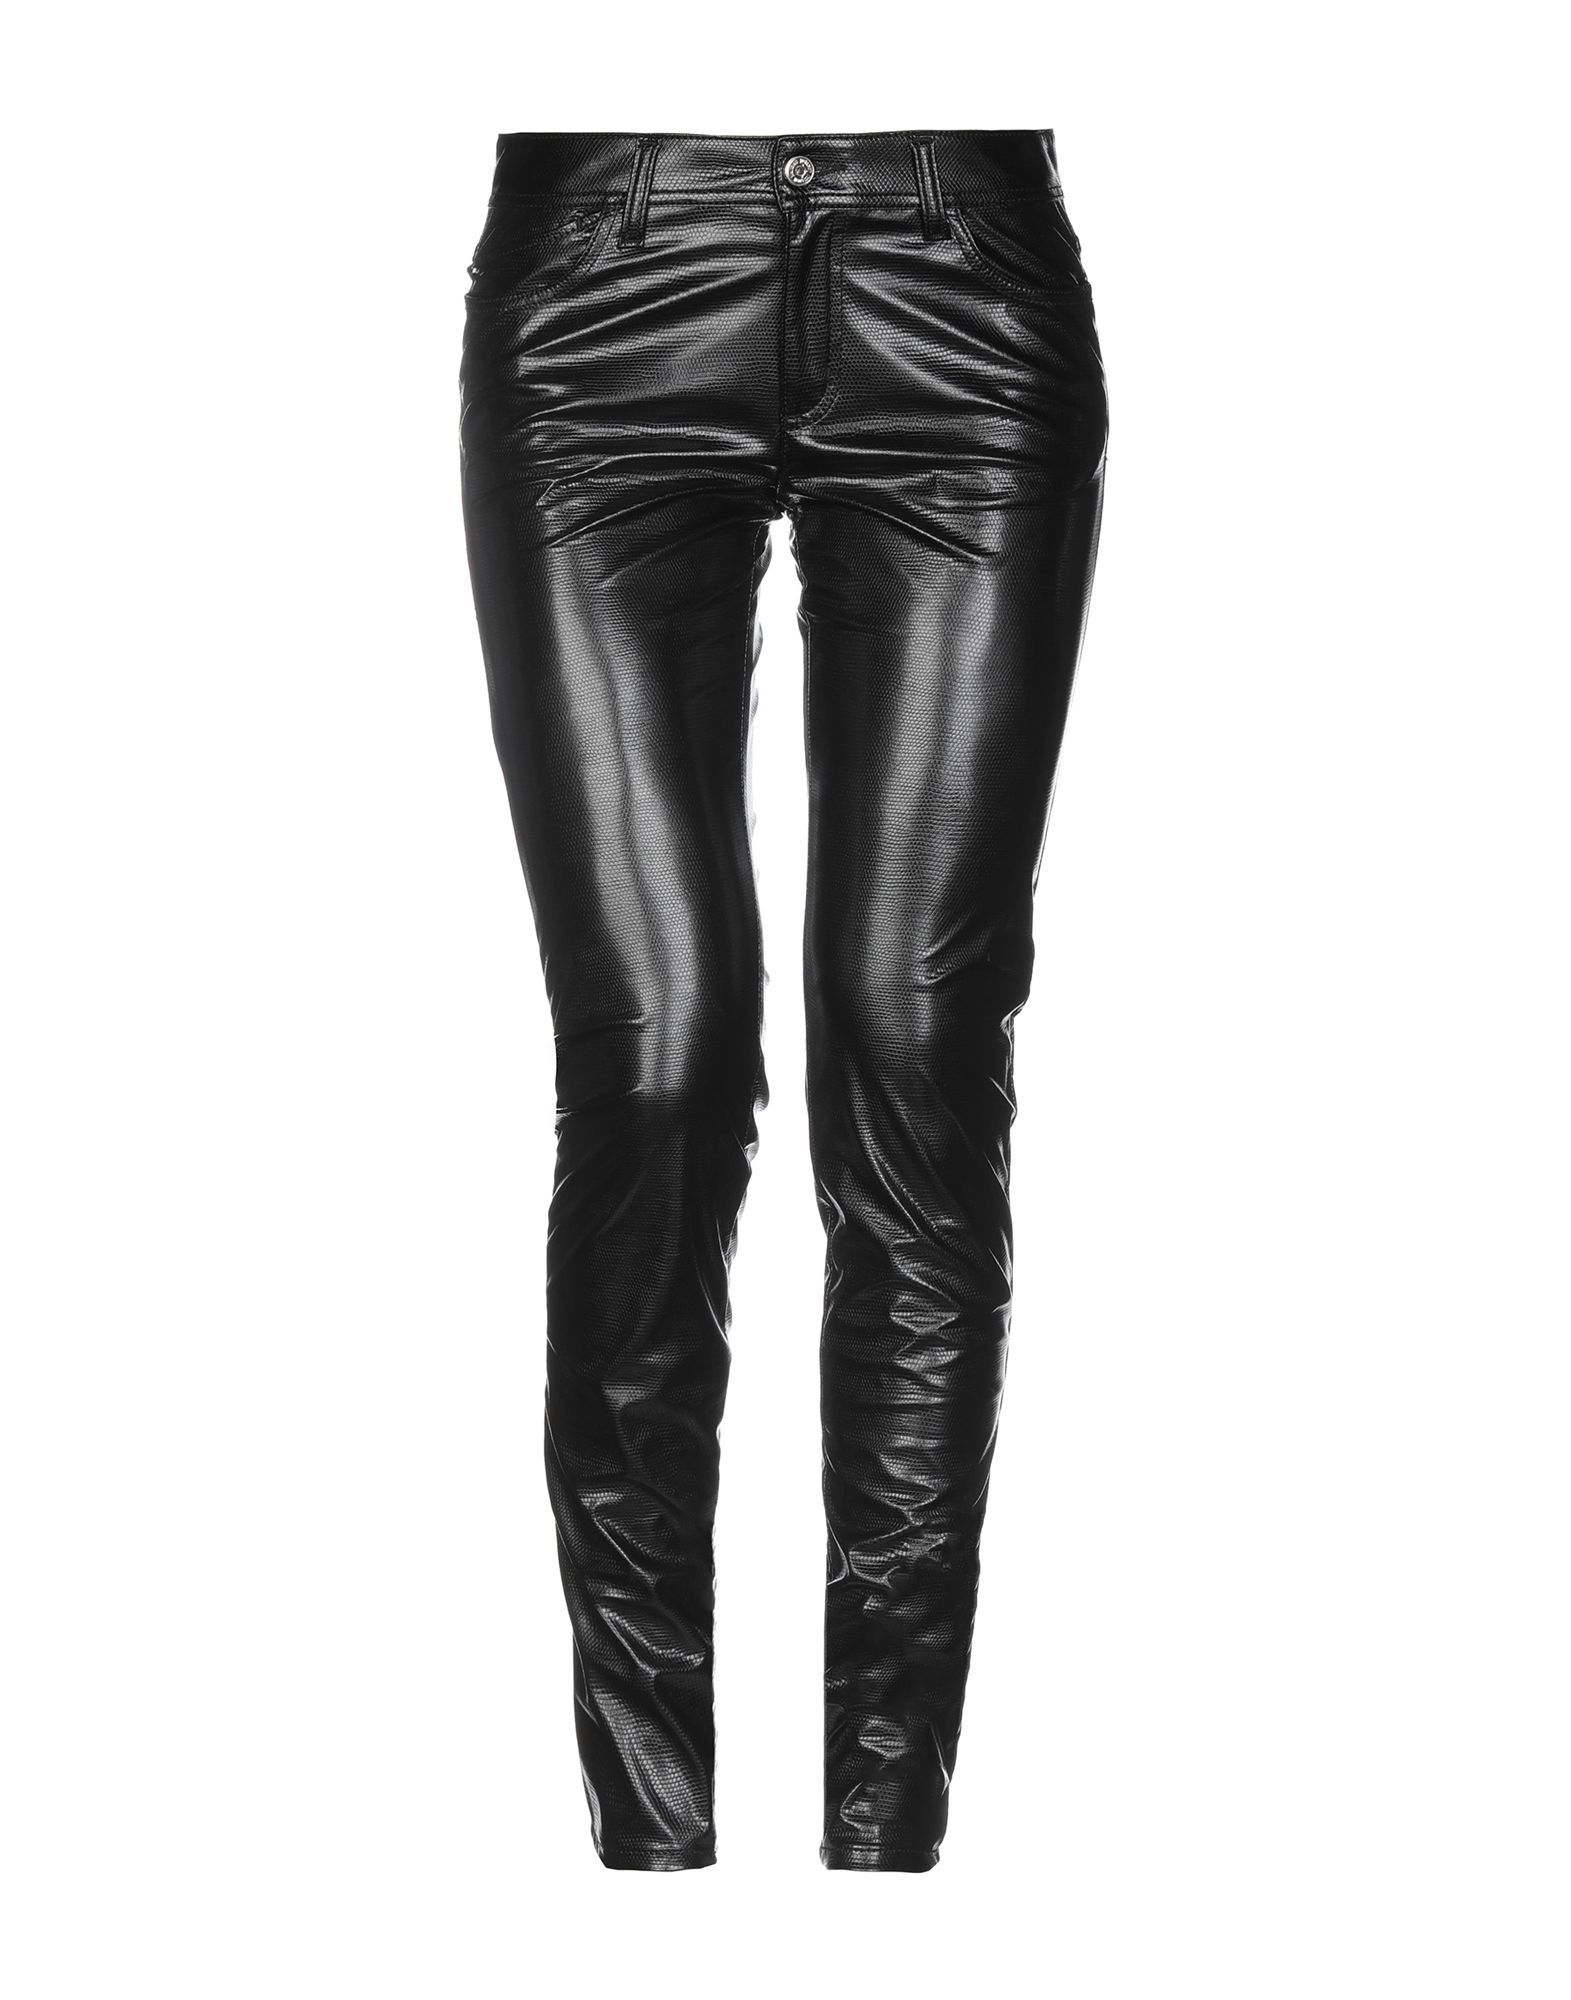 Just Cavalli Black Faux Leather Trousers